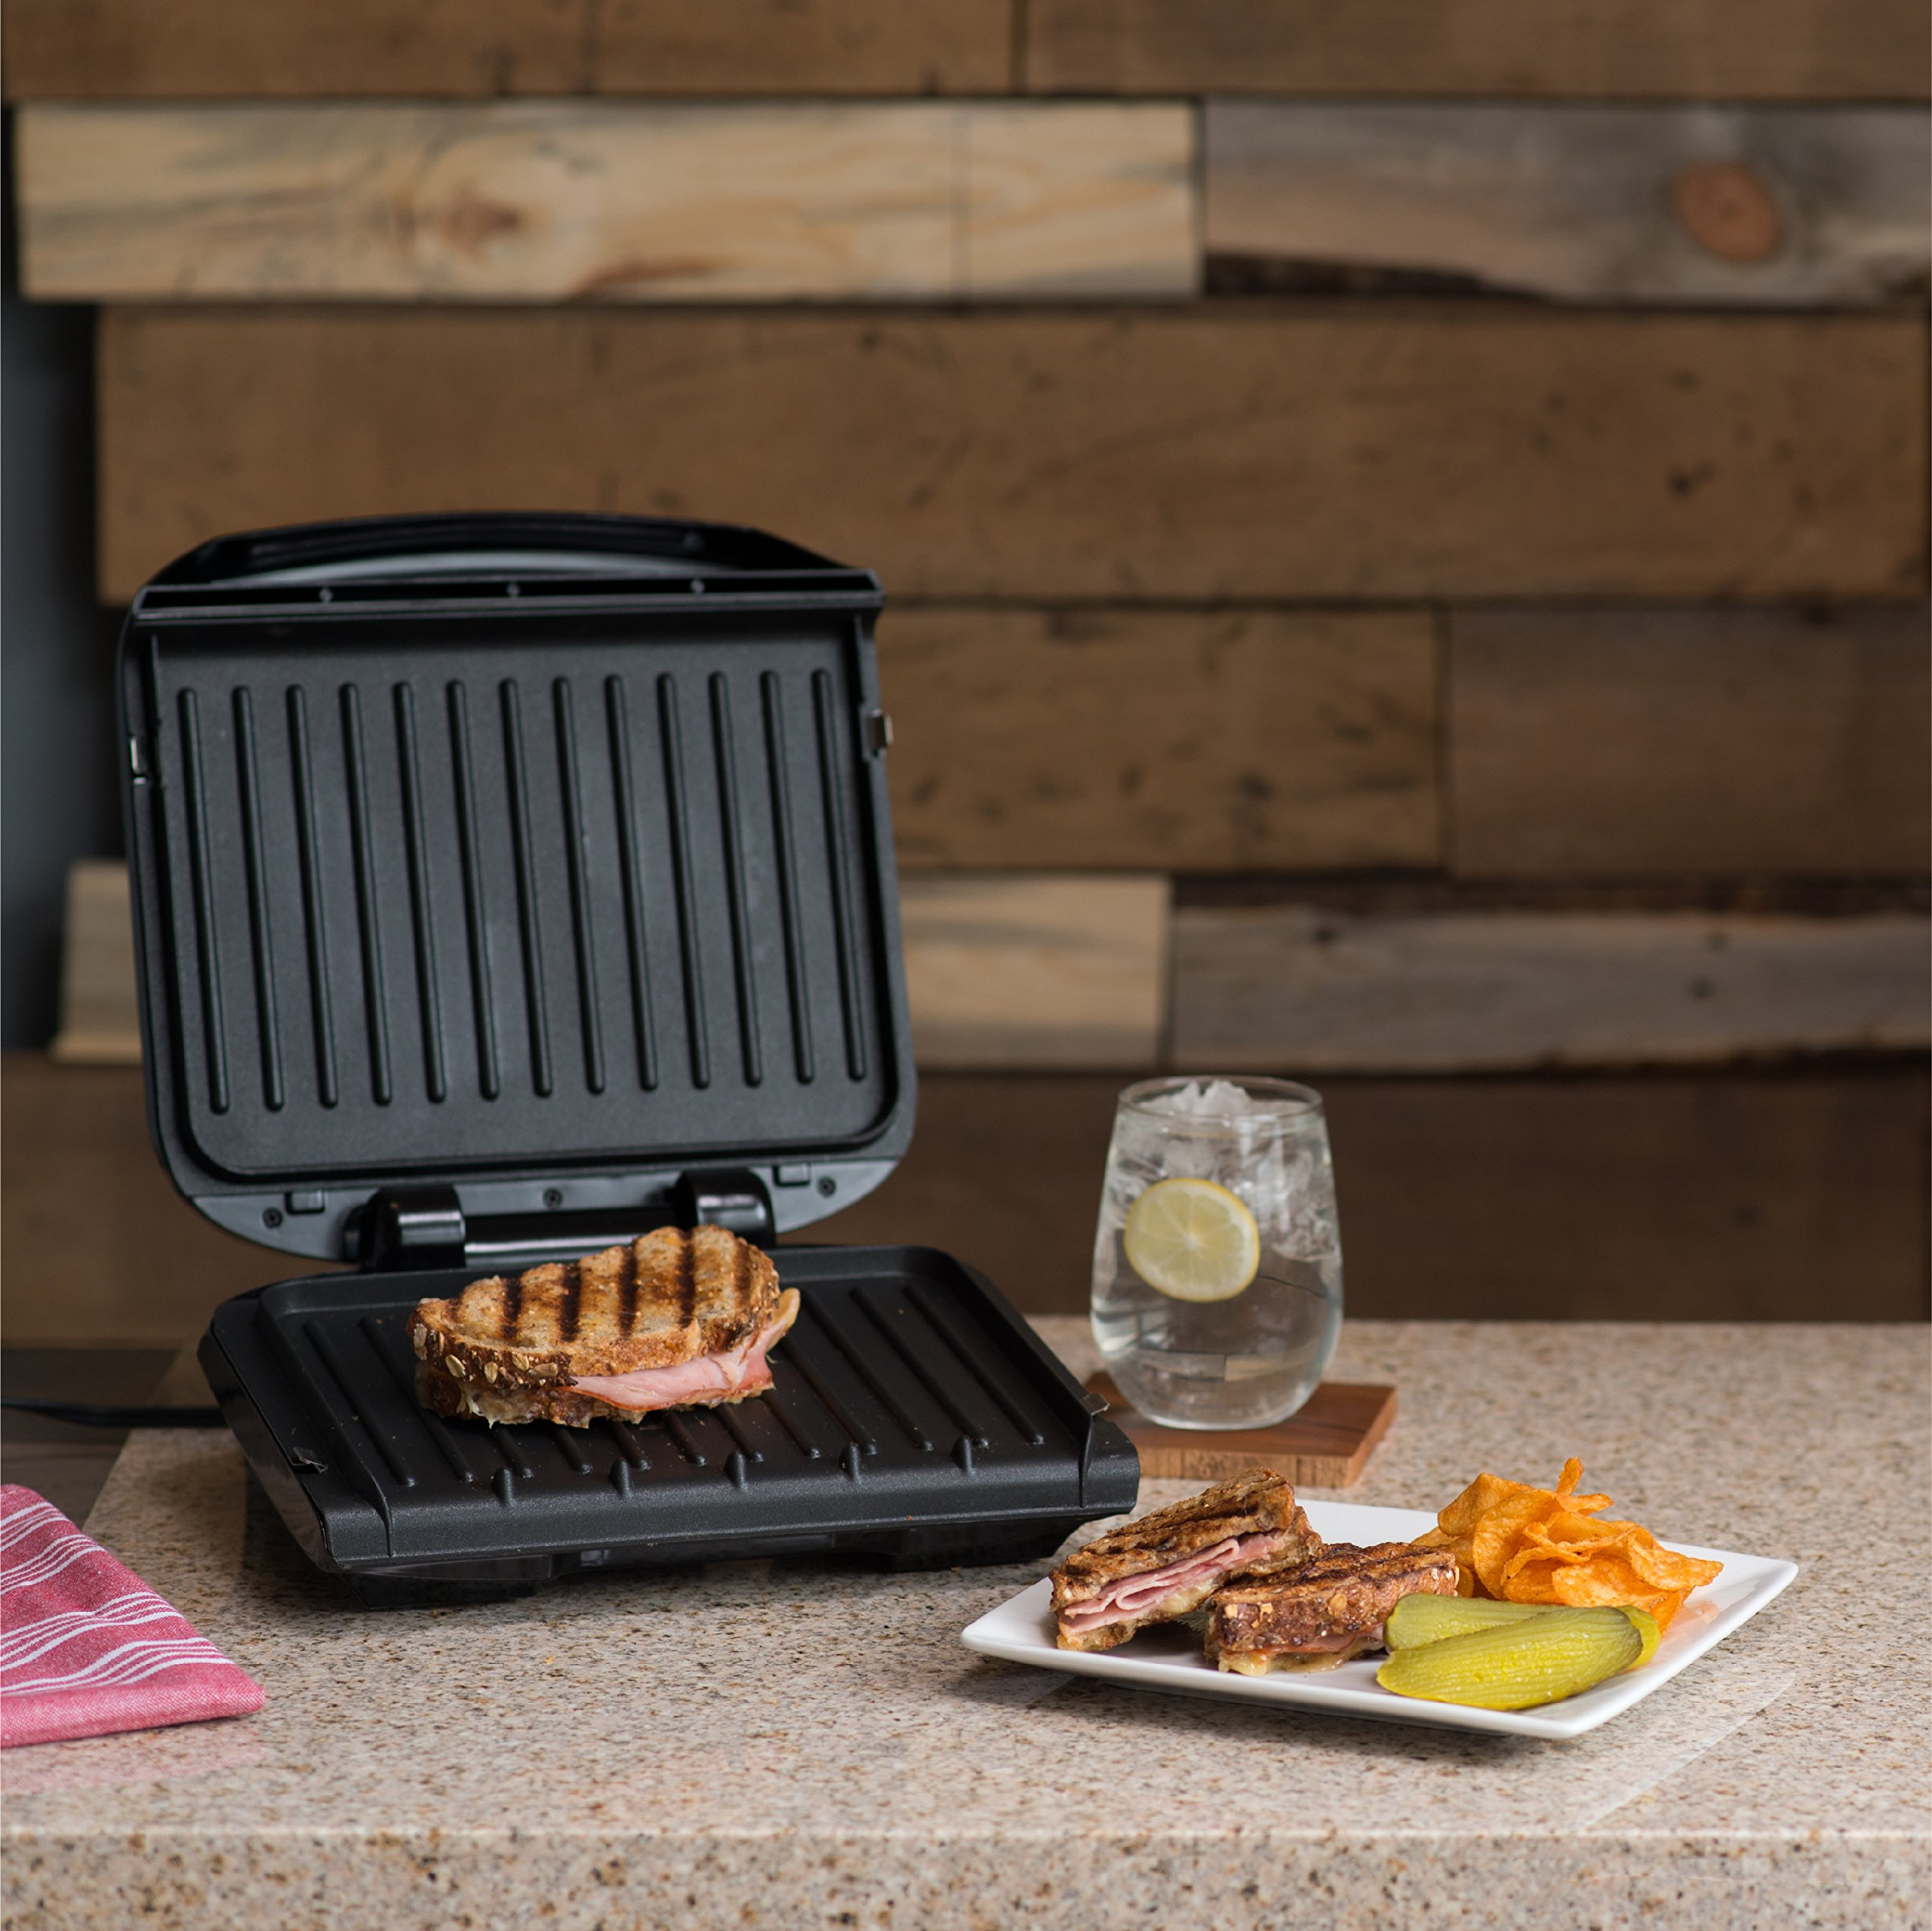 George Foreman 4-Serving Removable Plate Grill and Panini Press, Black, GRP1060B by George Foreman (Image #4)